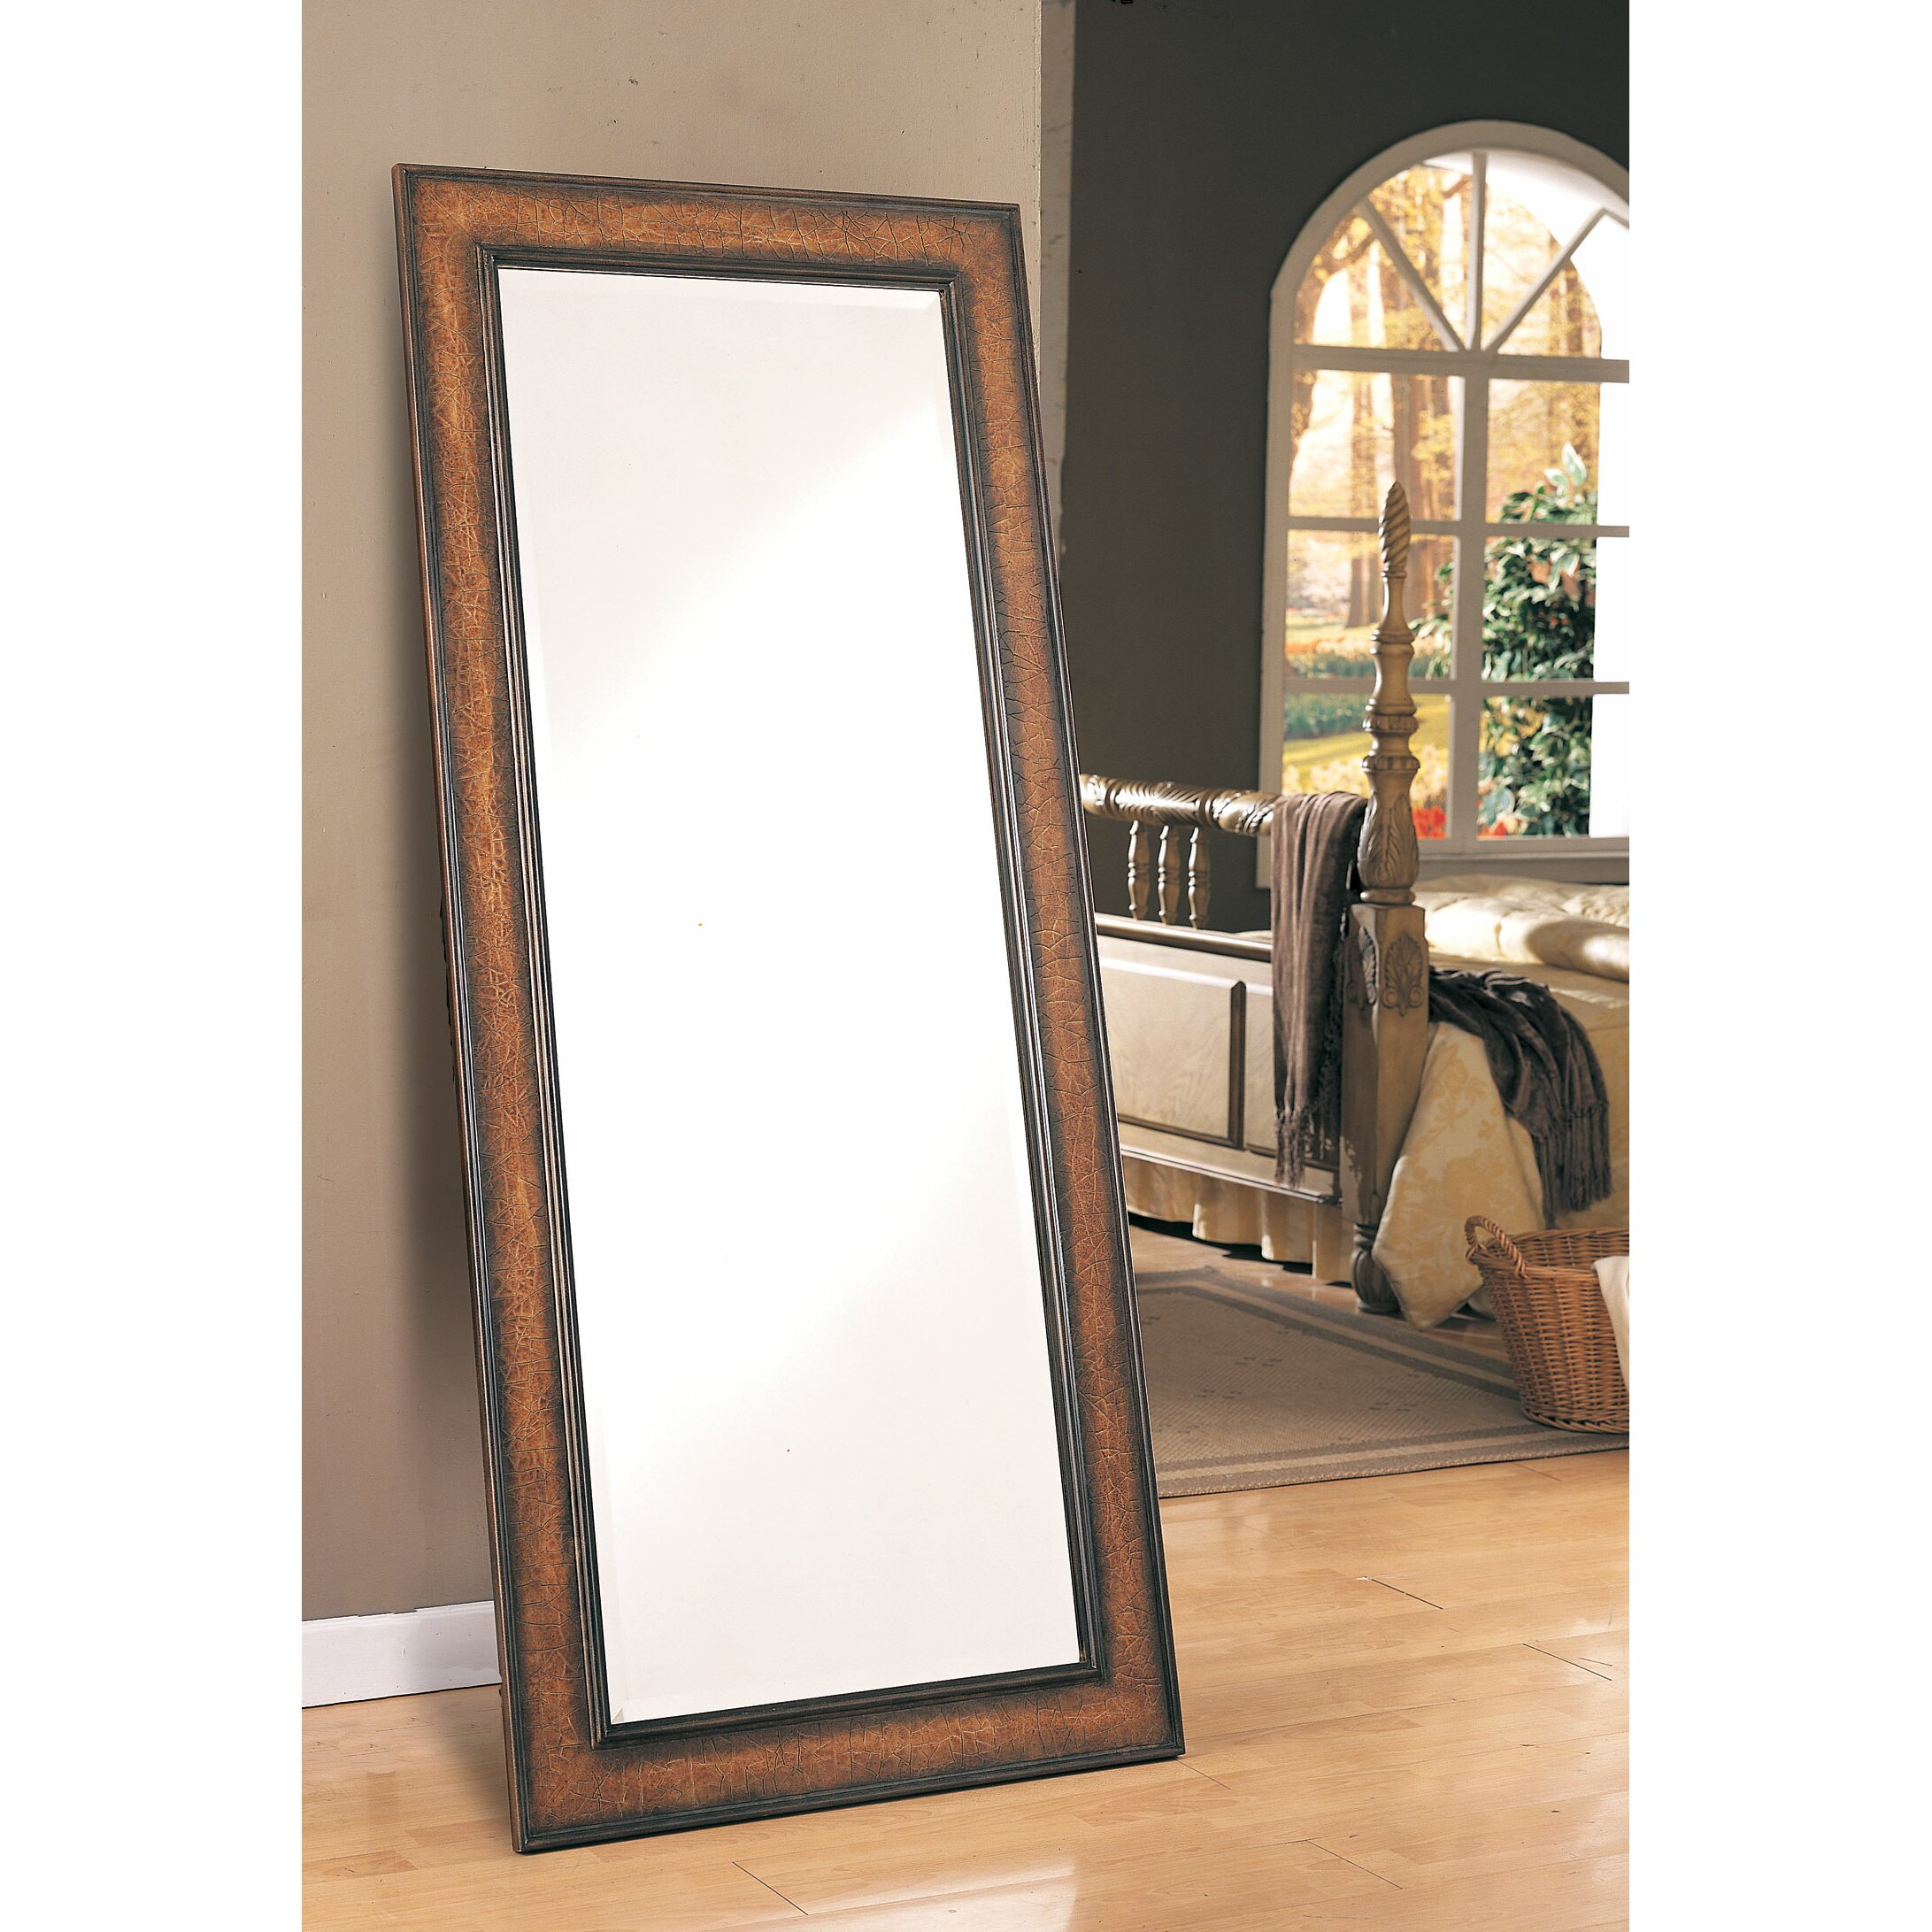 Darby home co russell leaning floor mirror reviews wayfair for Floor mirror